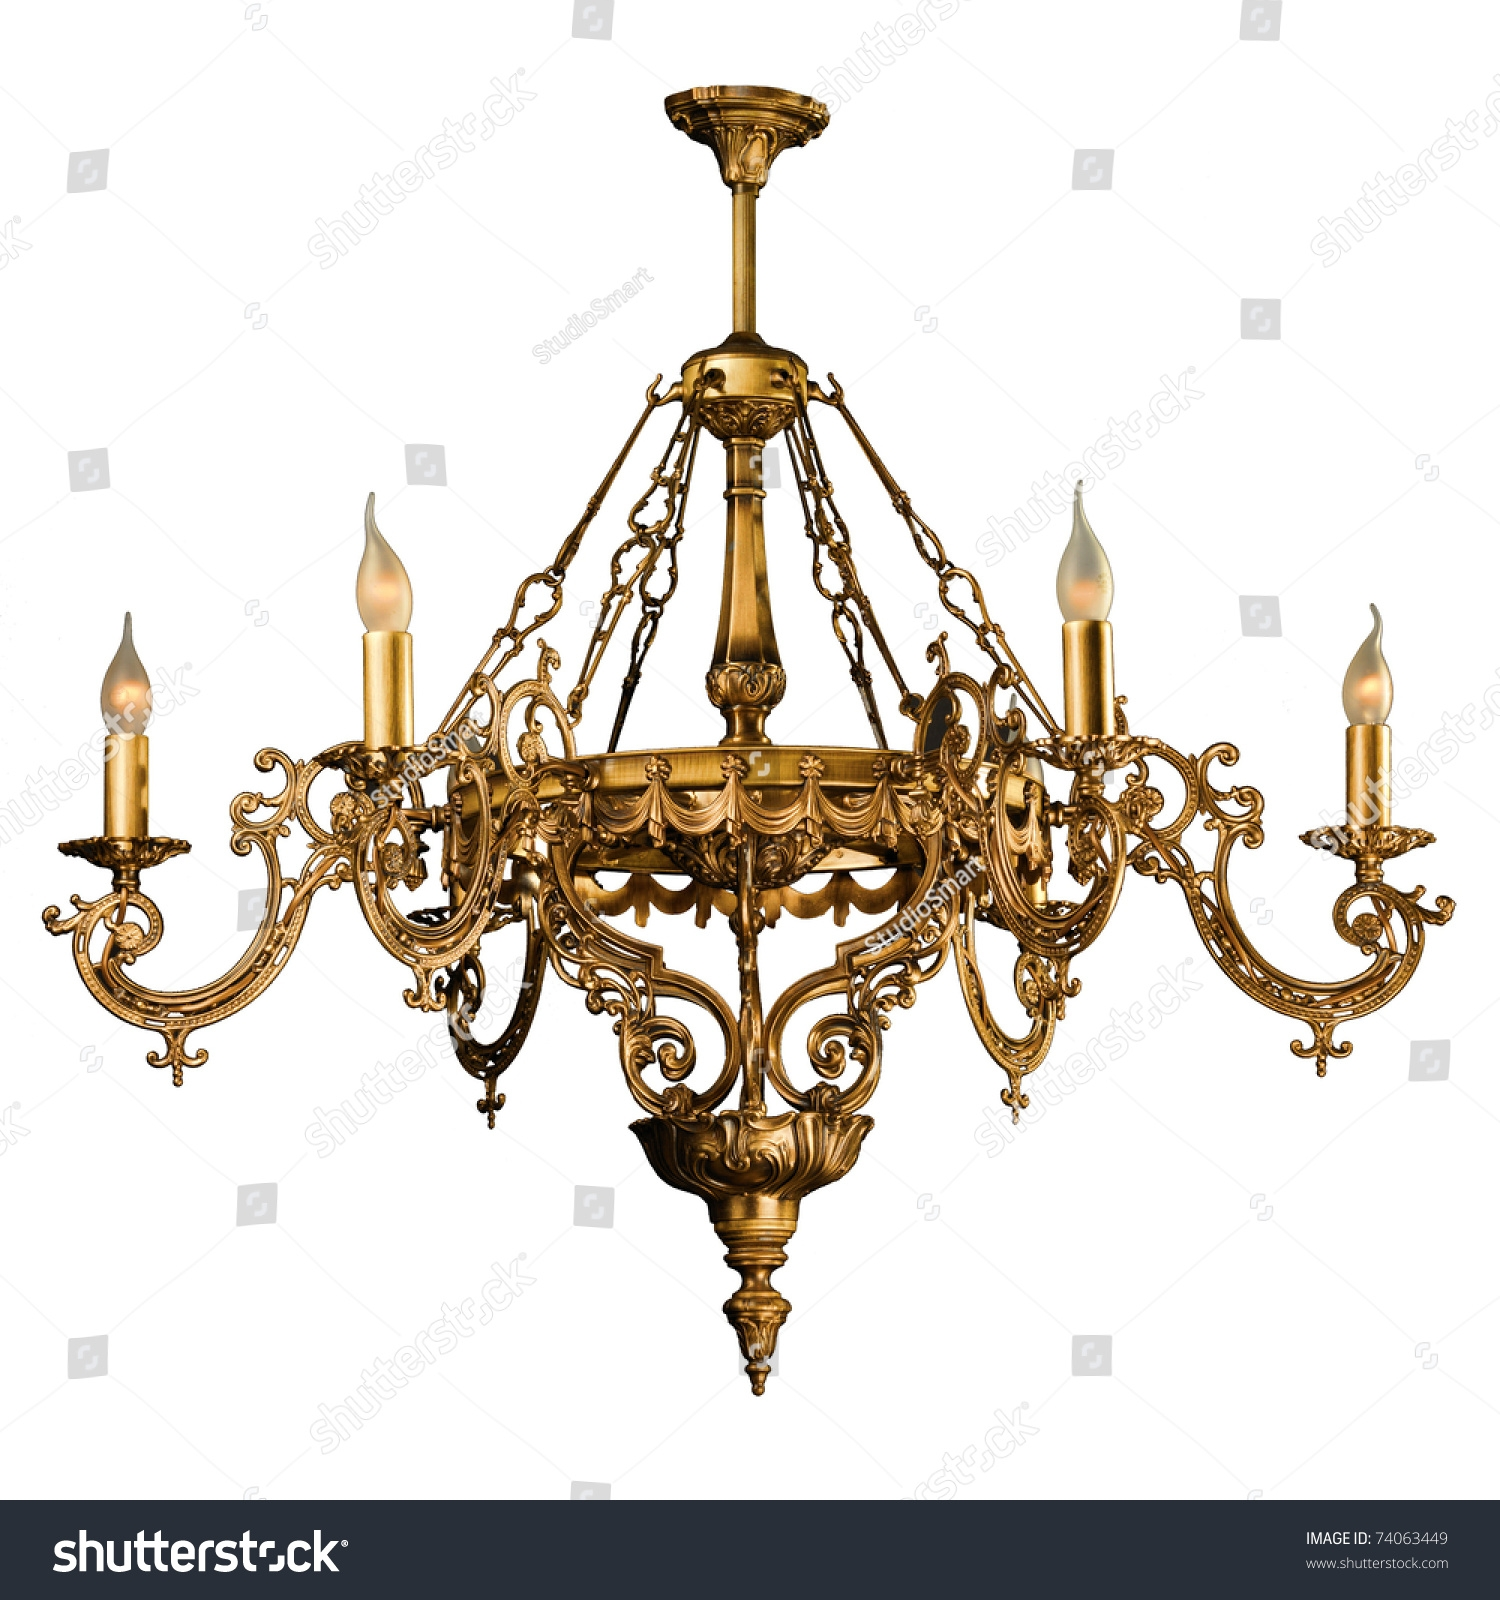 Chandelier In Vintage Style Isolated On White Stock Photo 74063449 With Regard To Vintage Style Chandelier (Image 6 of 15)